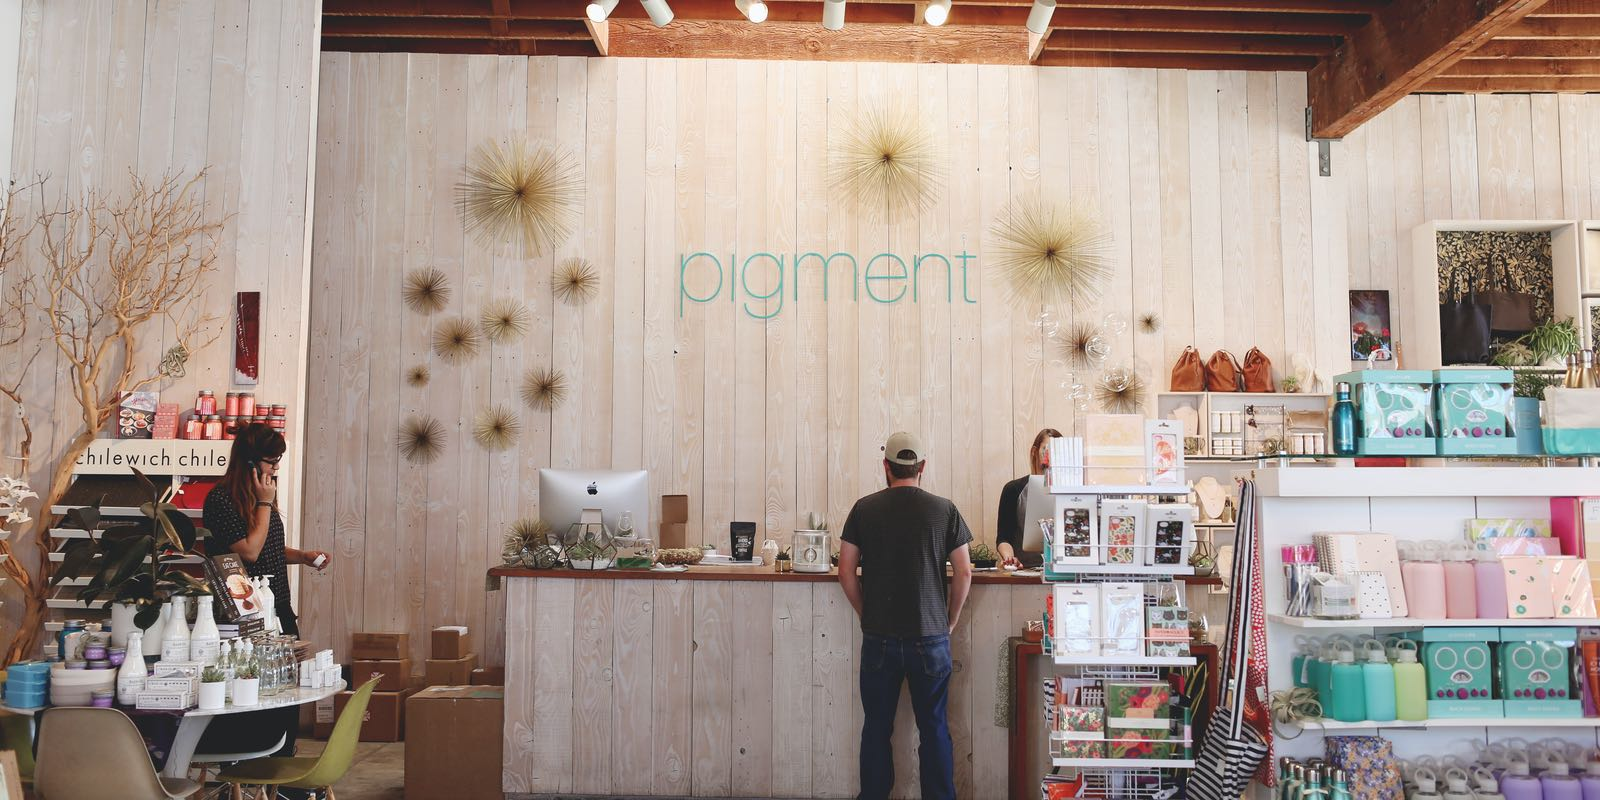 Pigment - Shop these Unique San Diego Boutiques this Holiday Season